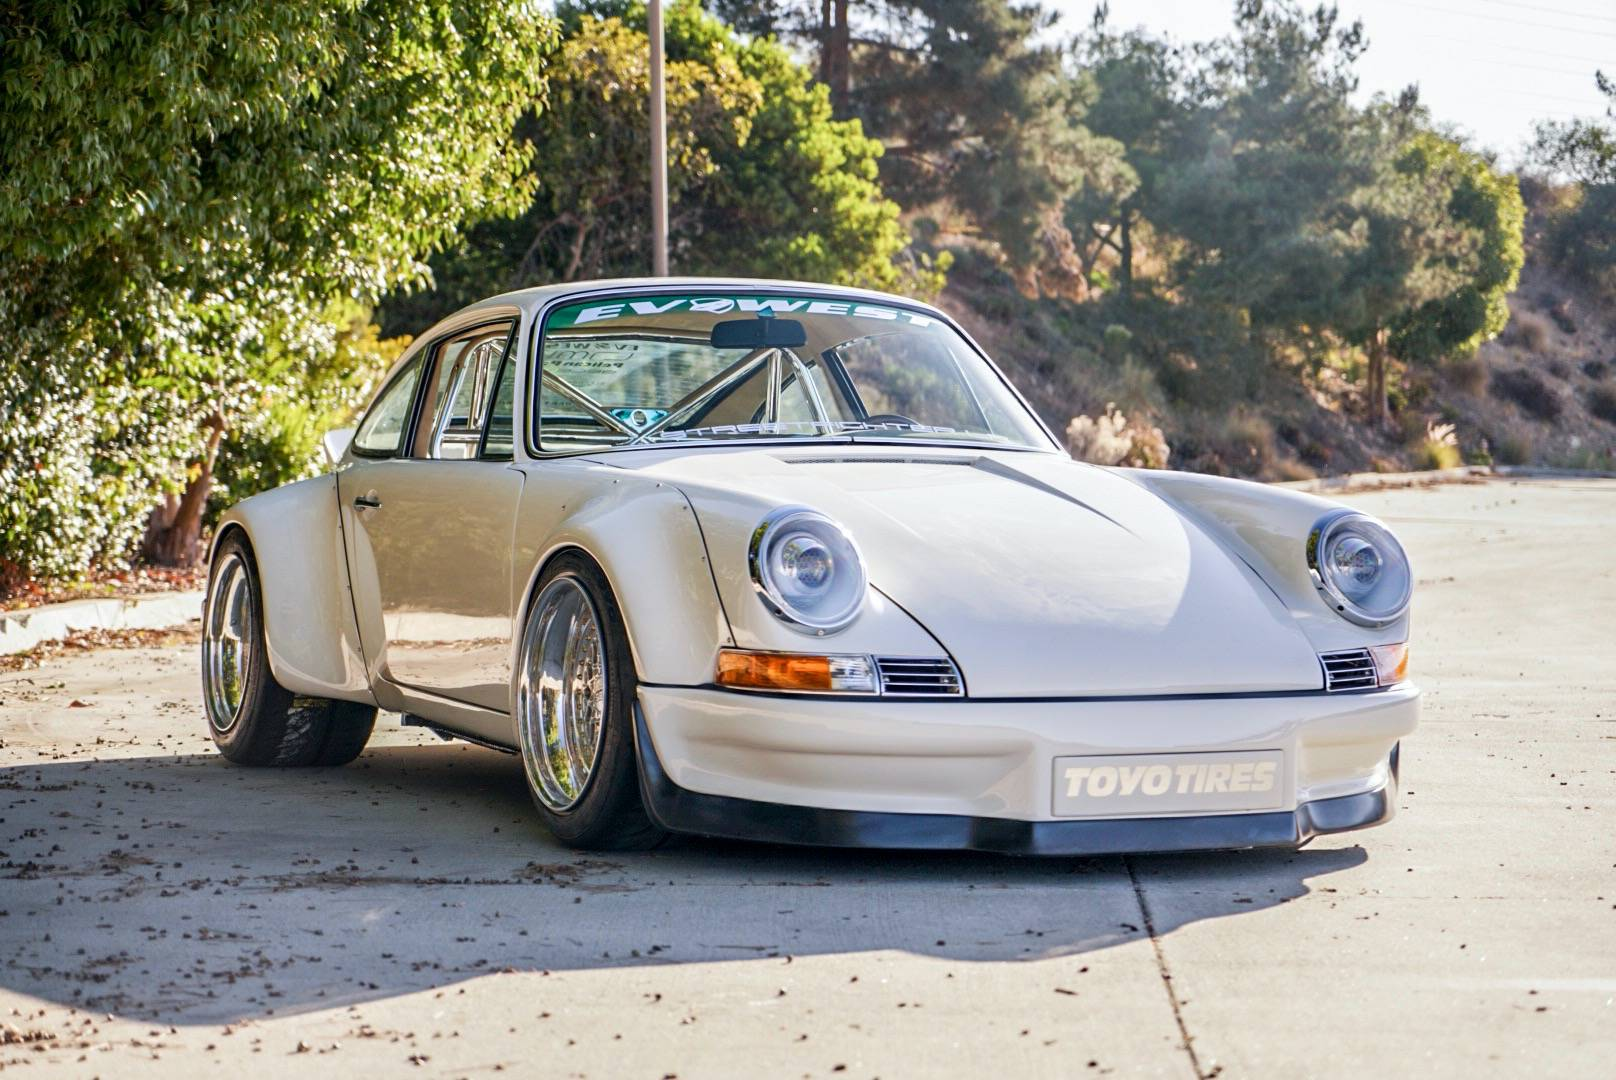 This year's SEMA expo will definitely keep us interested for many days to come. One of today's most remarkable premieres was this 1977 Porsche 911 coupe revived with the Tesla Model S Performance at its base.